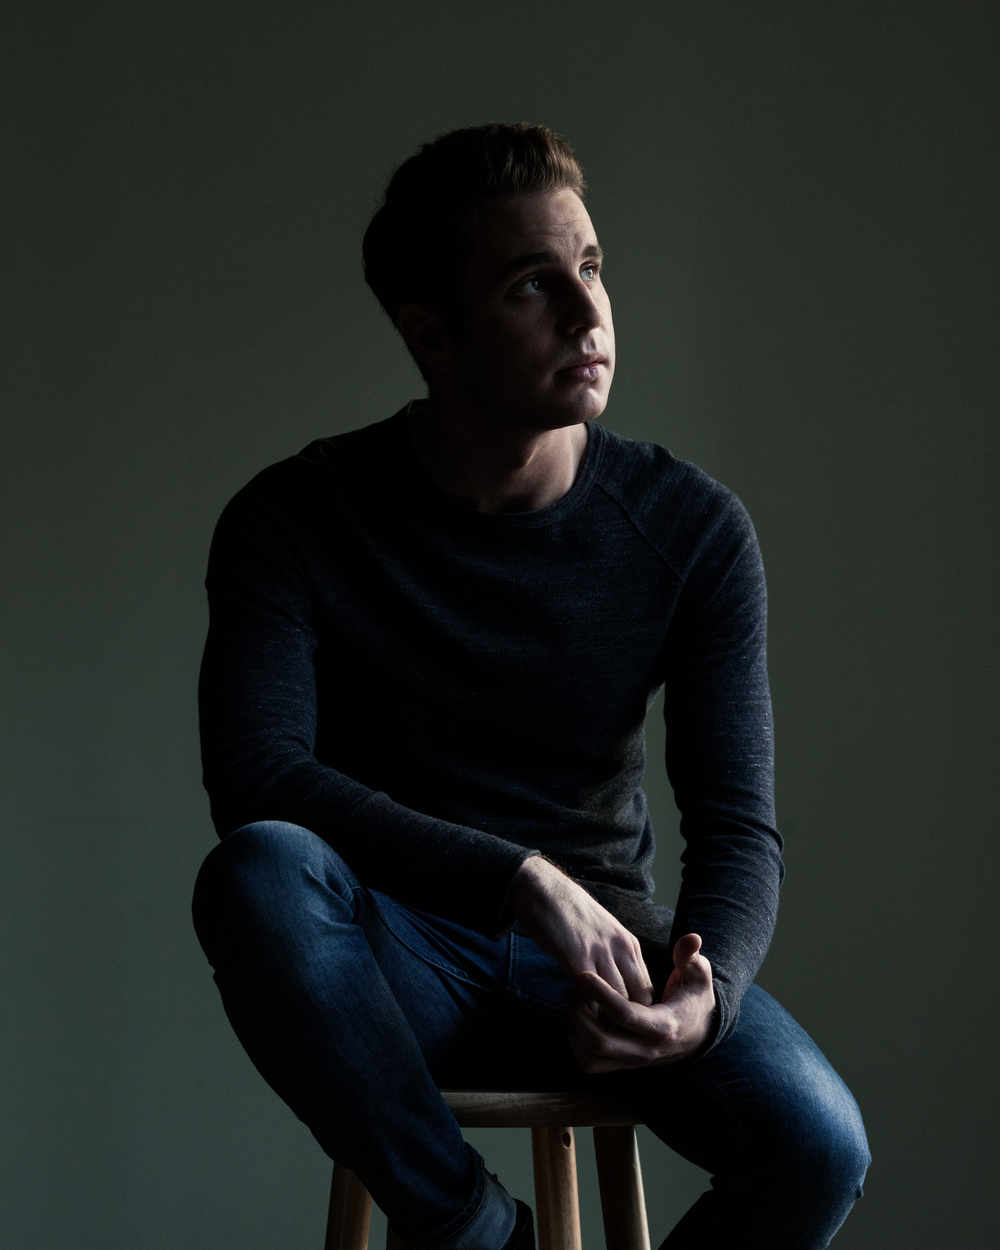 Ben Platt | The New York Times